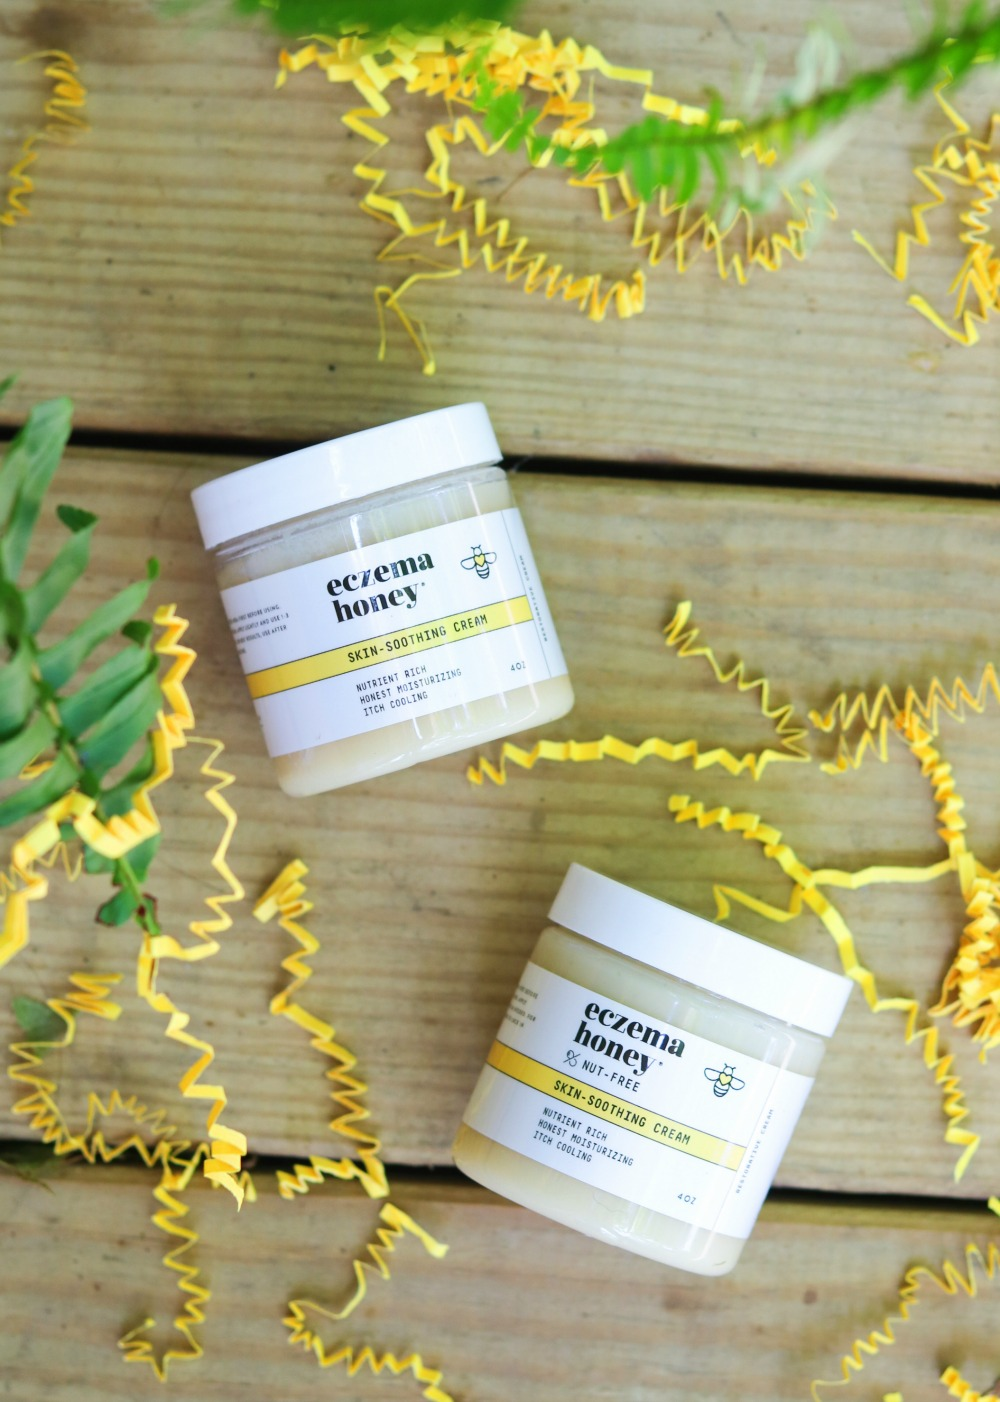 Eczema Honey Cream Review I DreaminLace.com #eczema #beautytips #beautyblog